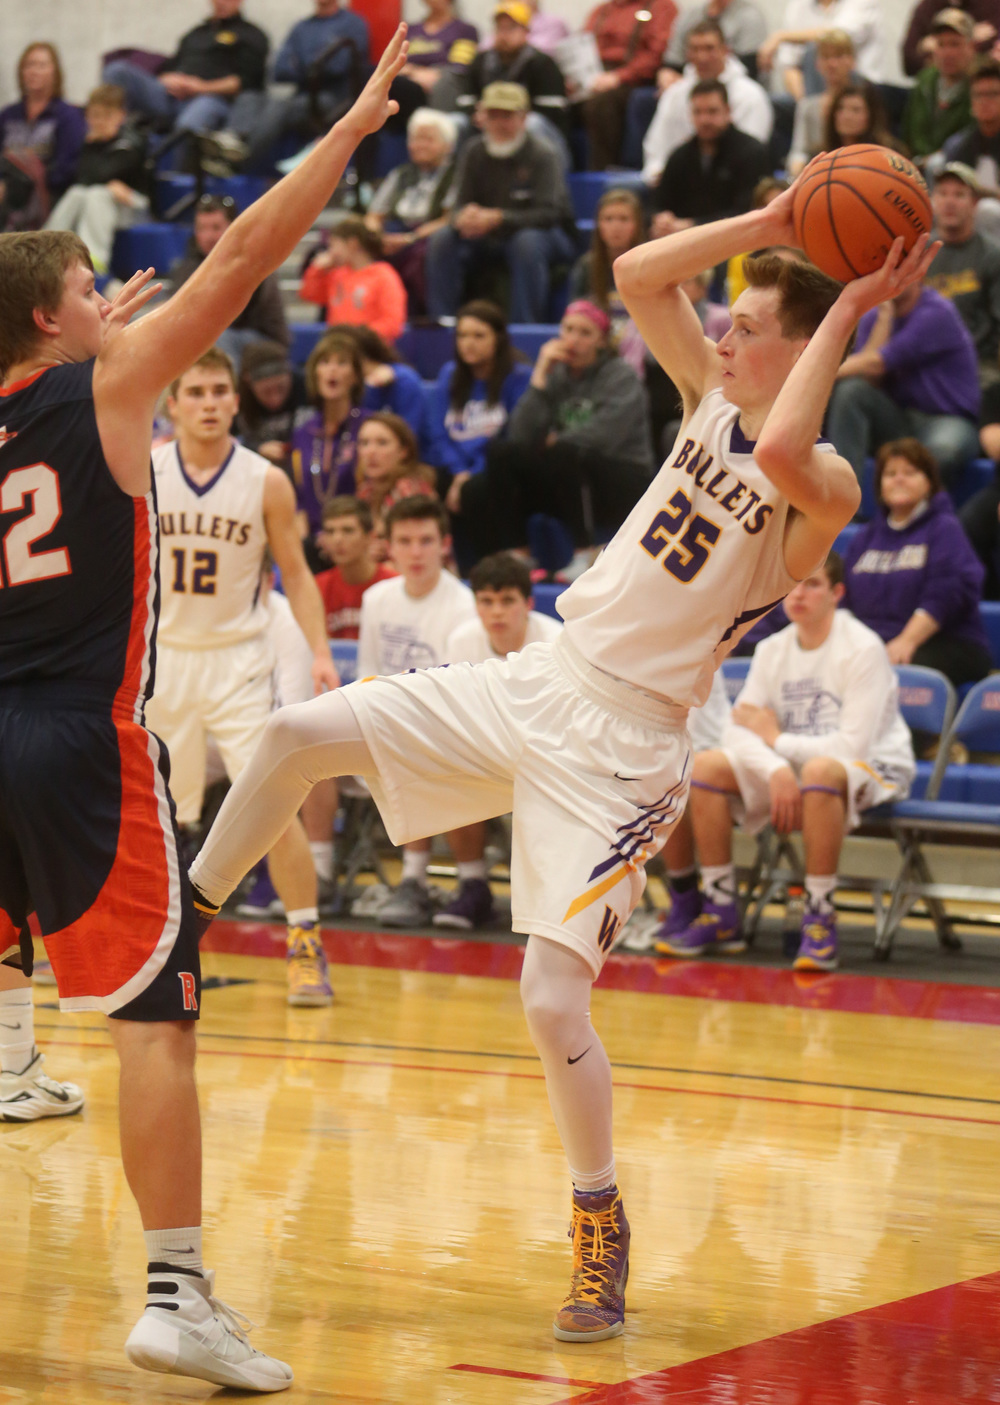 Williamsville player Harrison Creswell balances on one foot while looking to pass in the second half. David Spencer/The State Journal Register